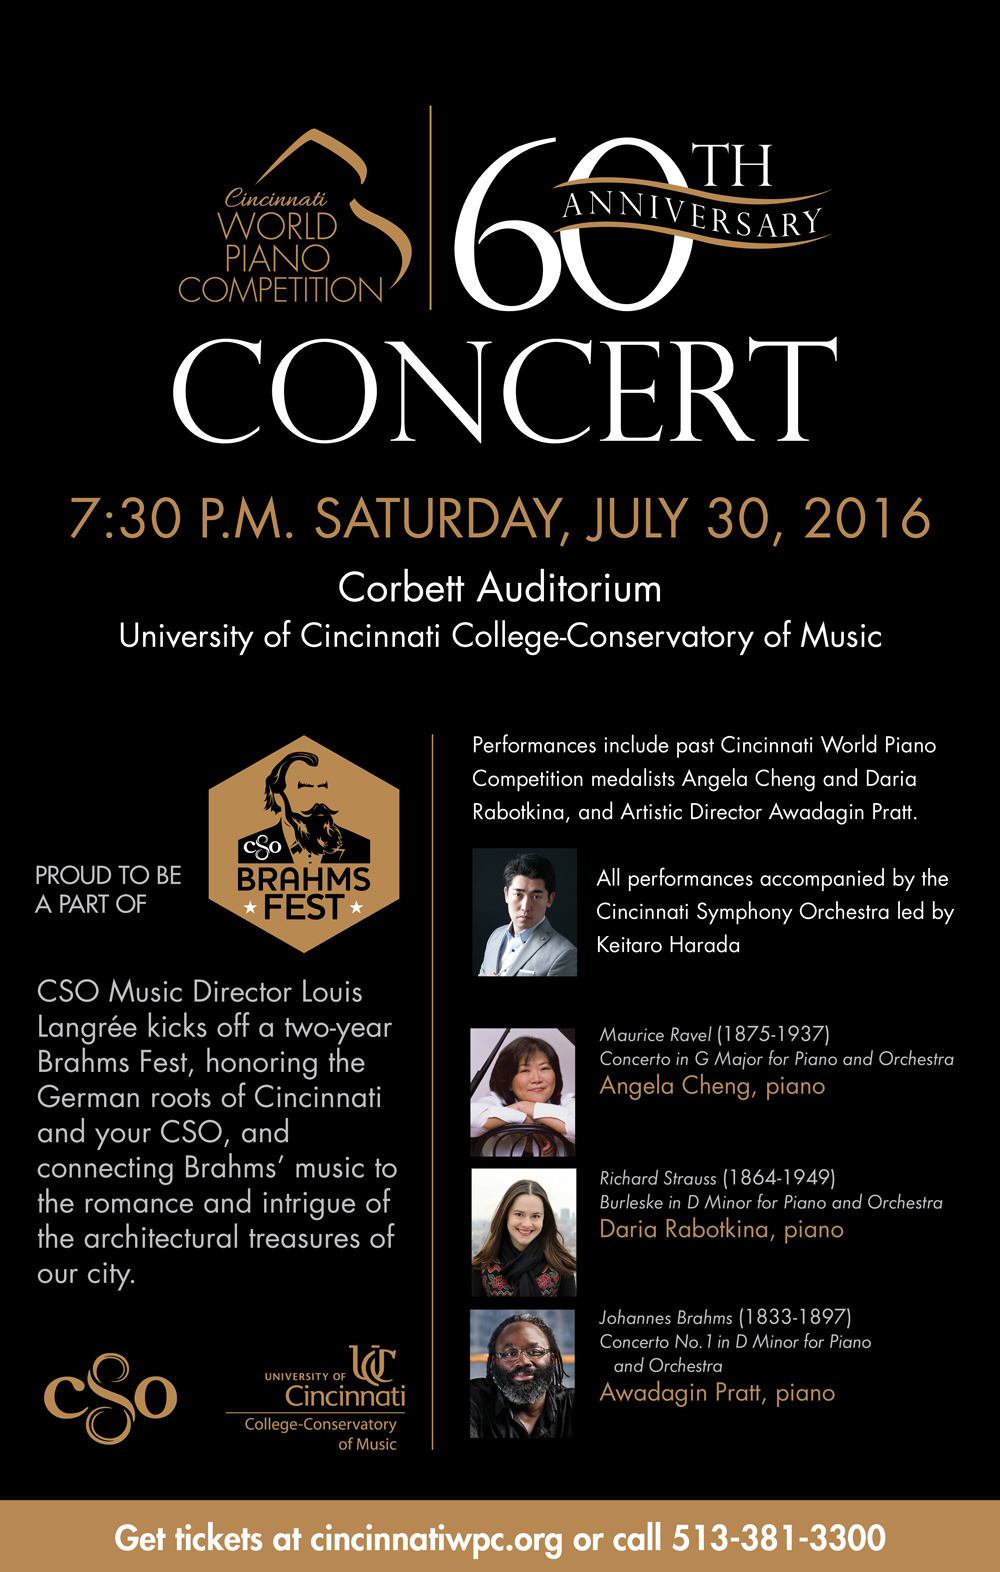 A poster for the 60th Anniversary Concert of the Cincinnati World Piano Competition.